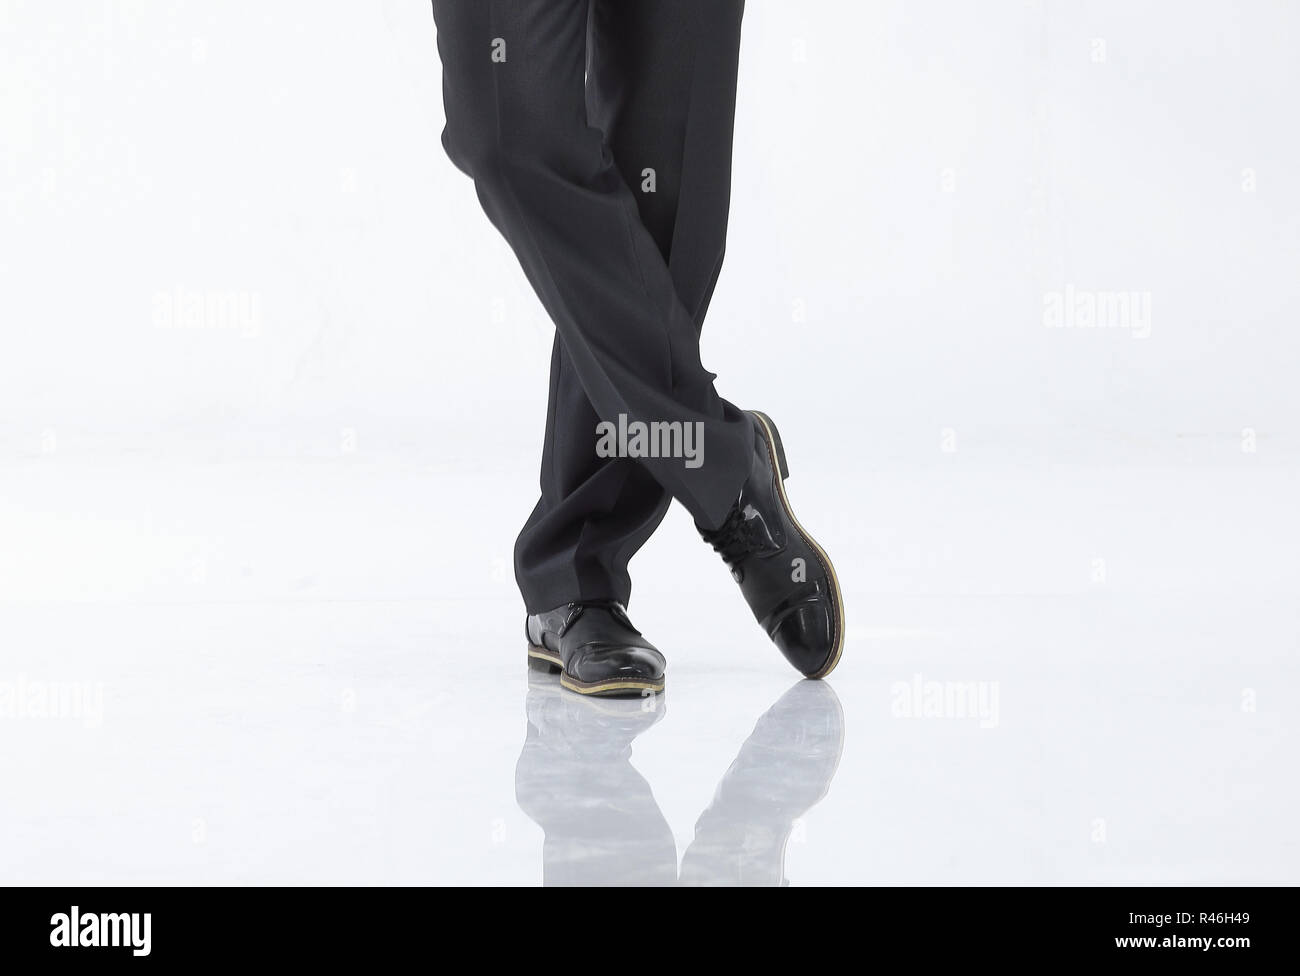 crossed legs of business man in pants and shoes.isolated on white - Stock Image